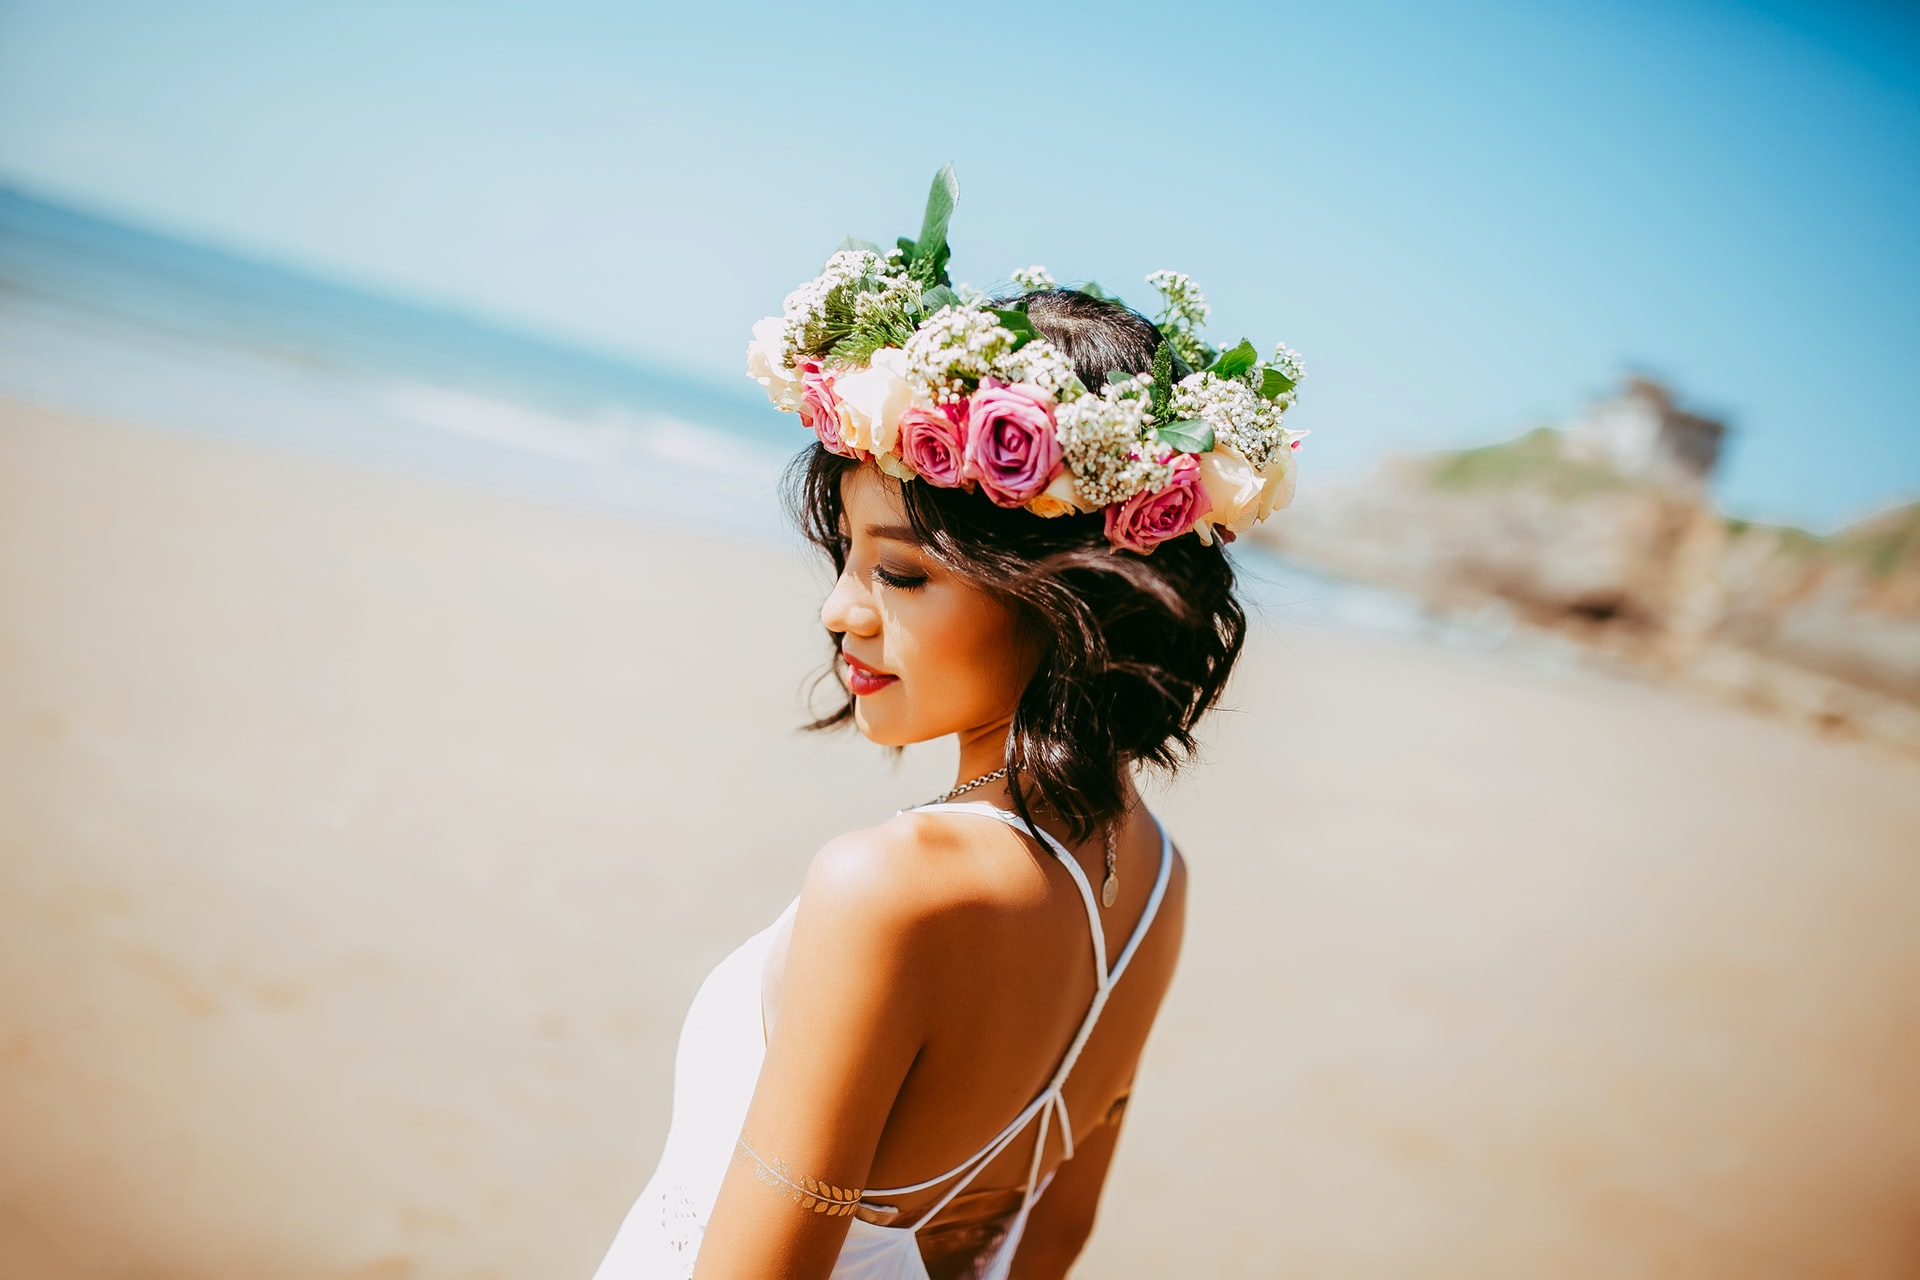 asian girl with flowers in hair